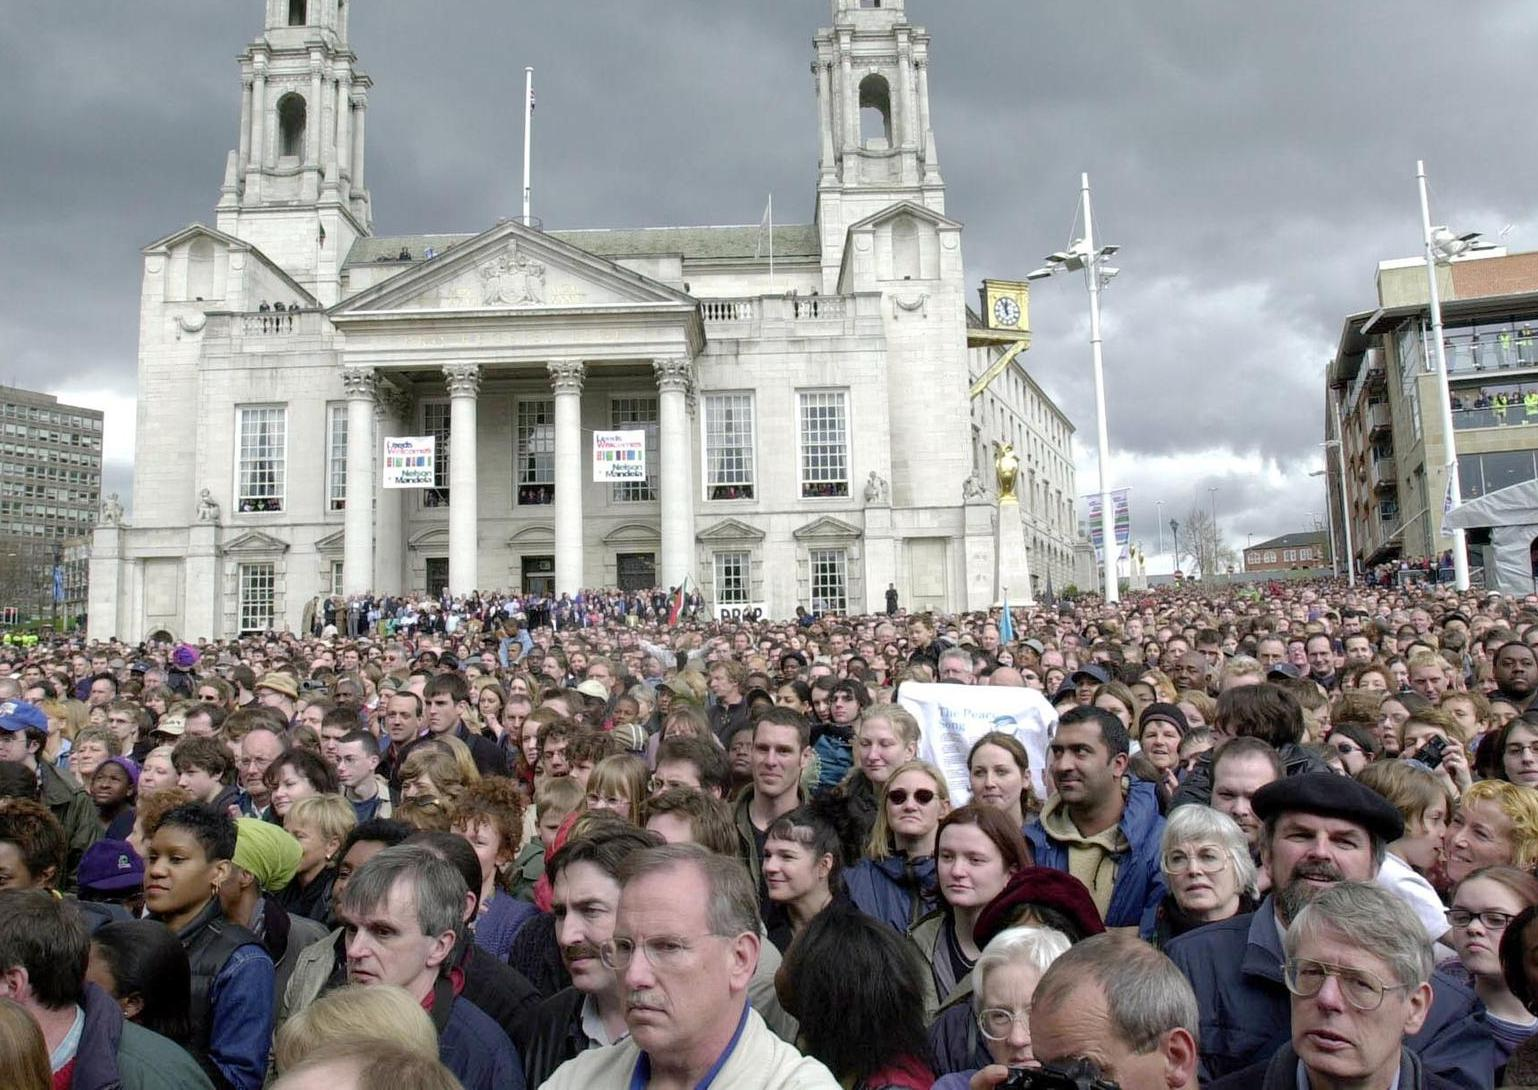 51 photos to take you back to Leeds in 2001